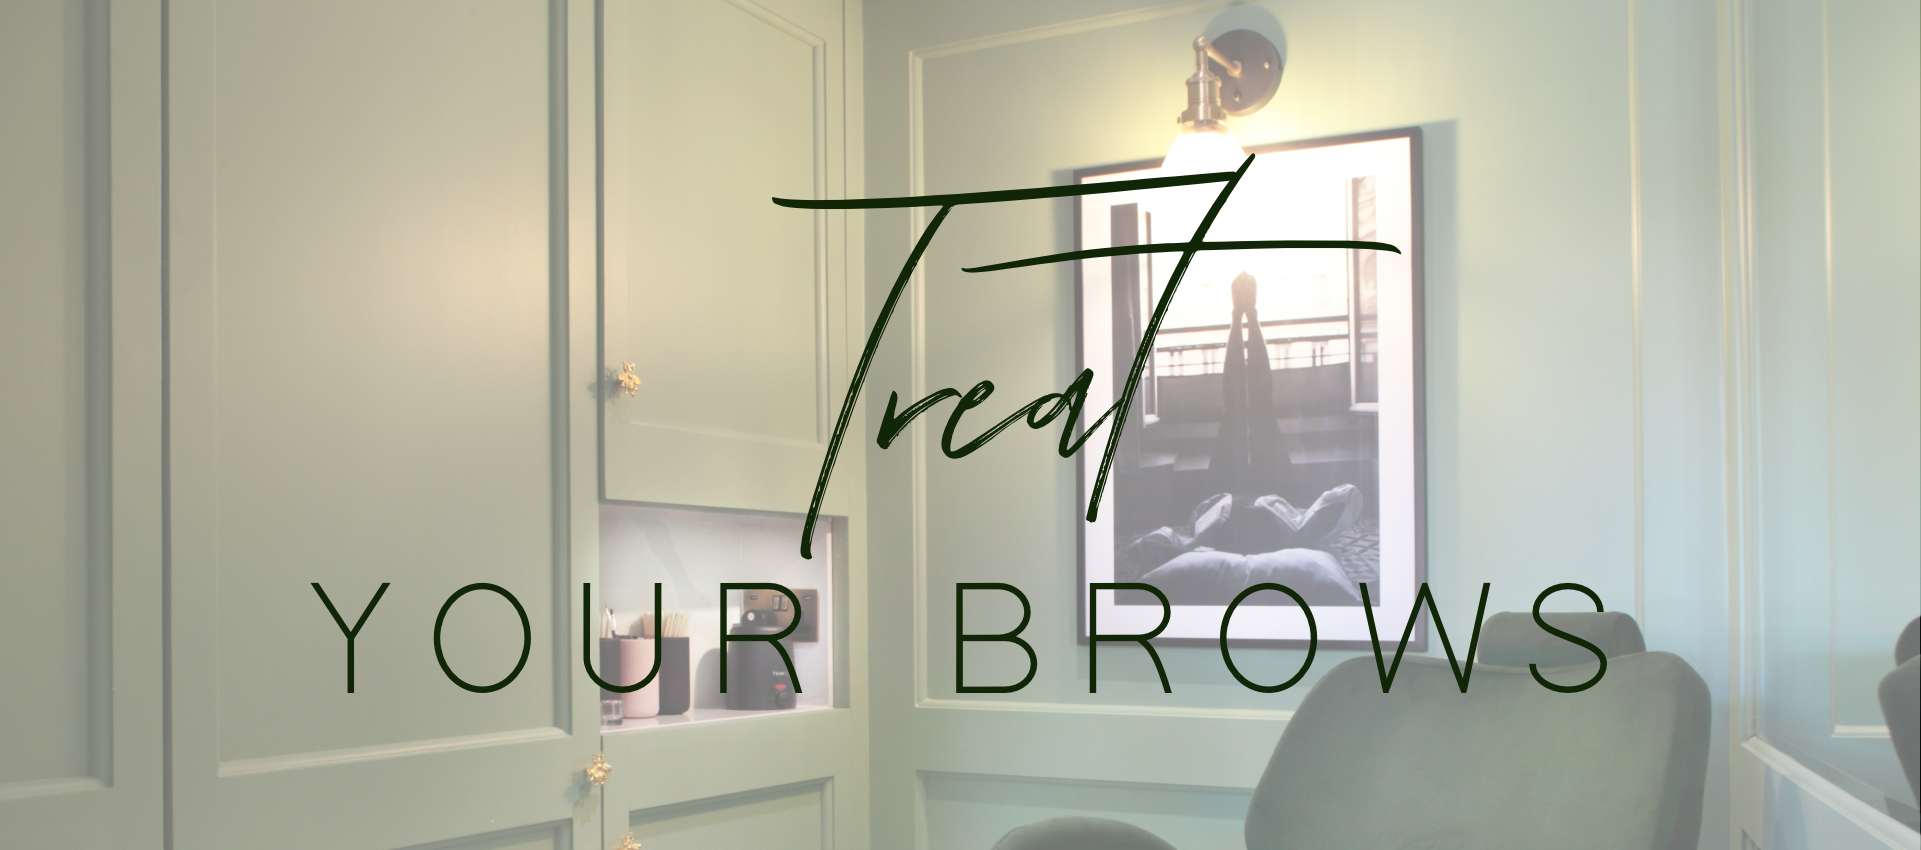 Treat your brows at 12 the green